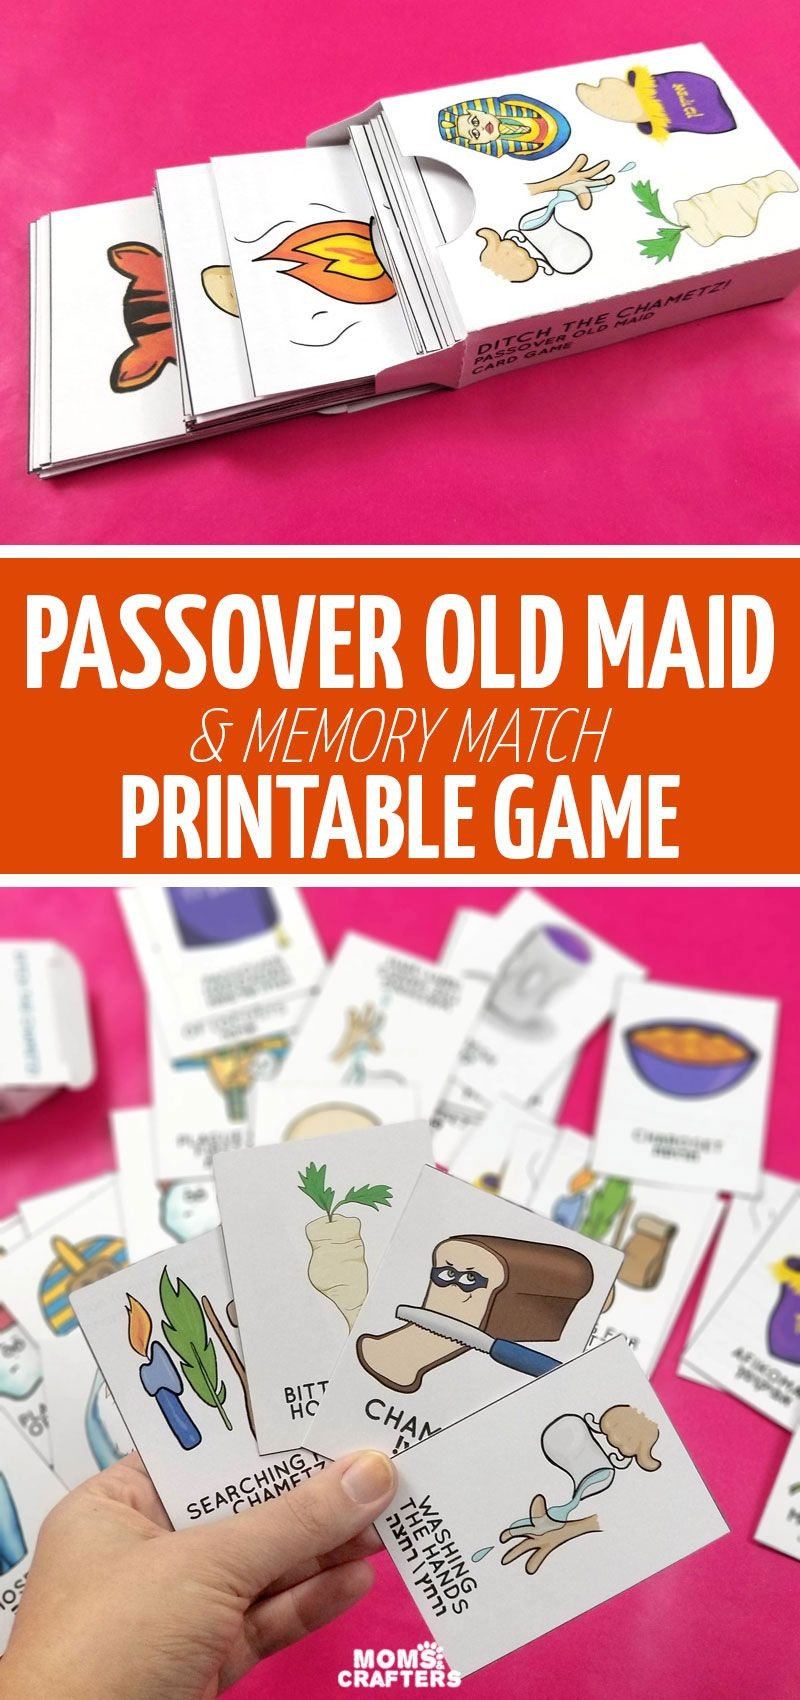 Download This Printable Passover Game: A Deck Of Hand-Illustrated - Free Printable Old Maid Card Game